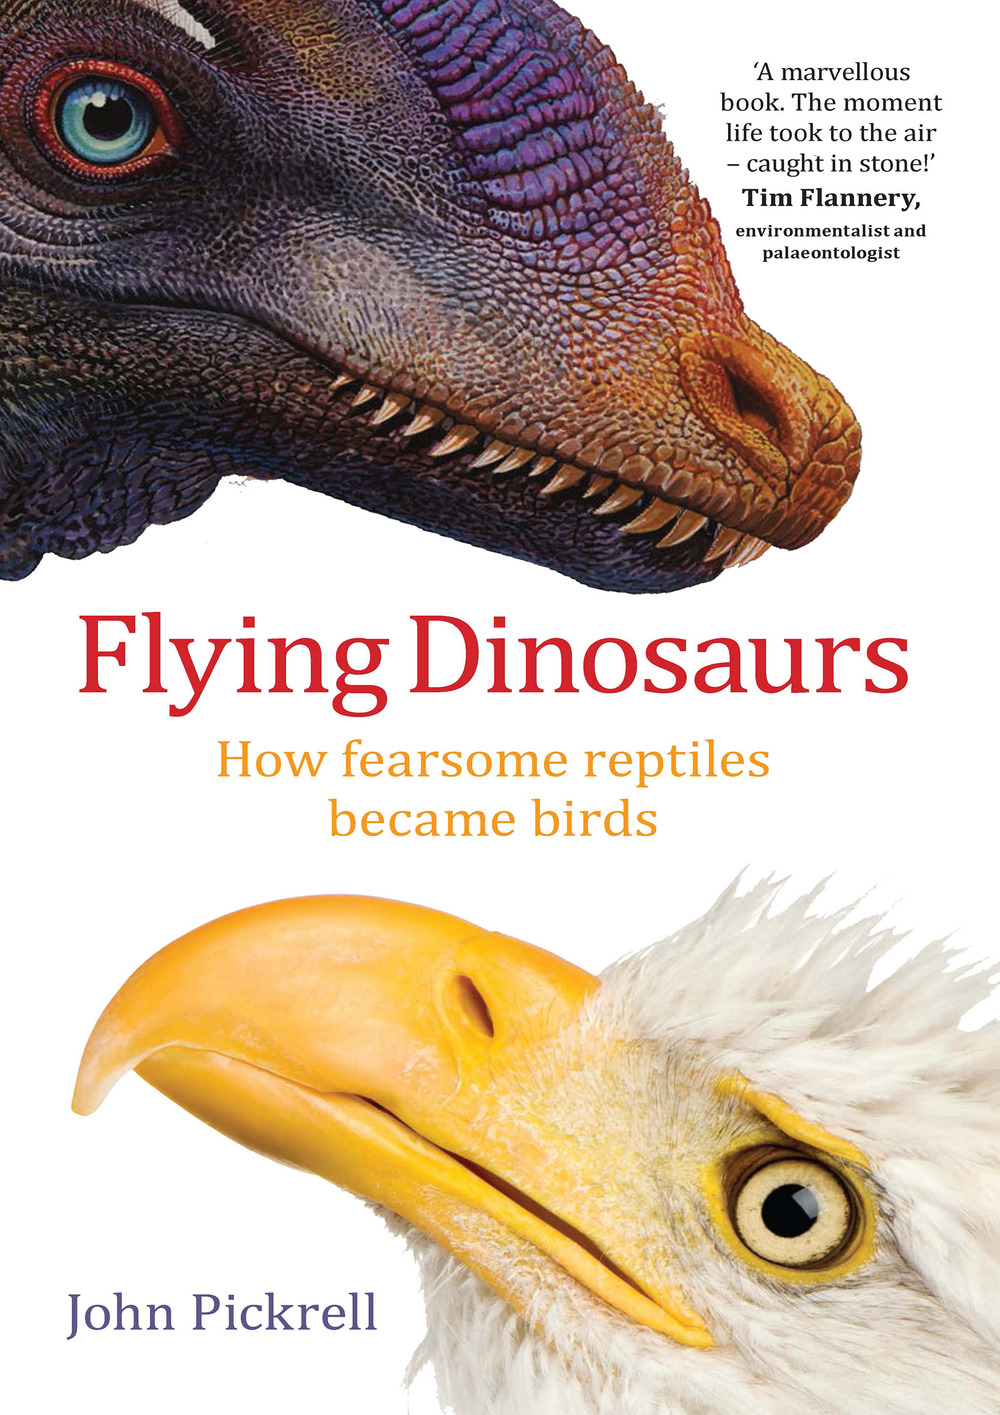 Flying Dinosaurs.jpg